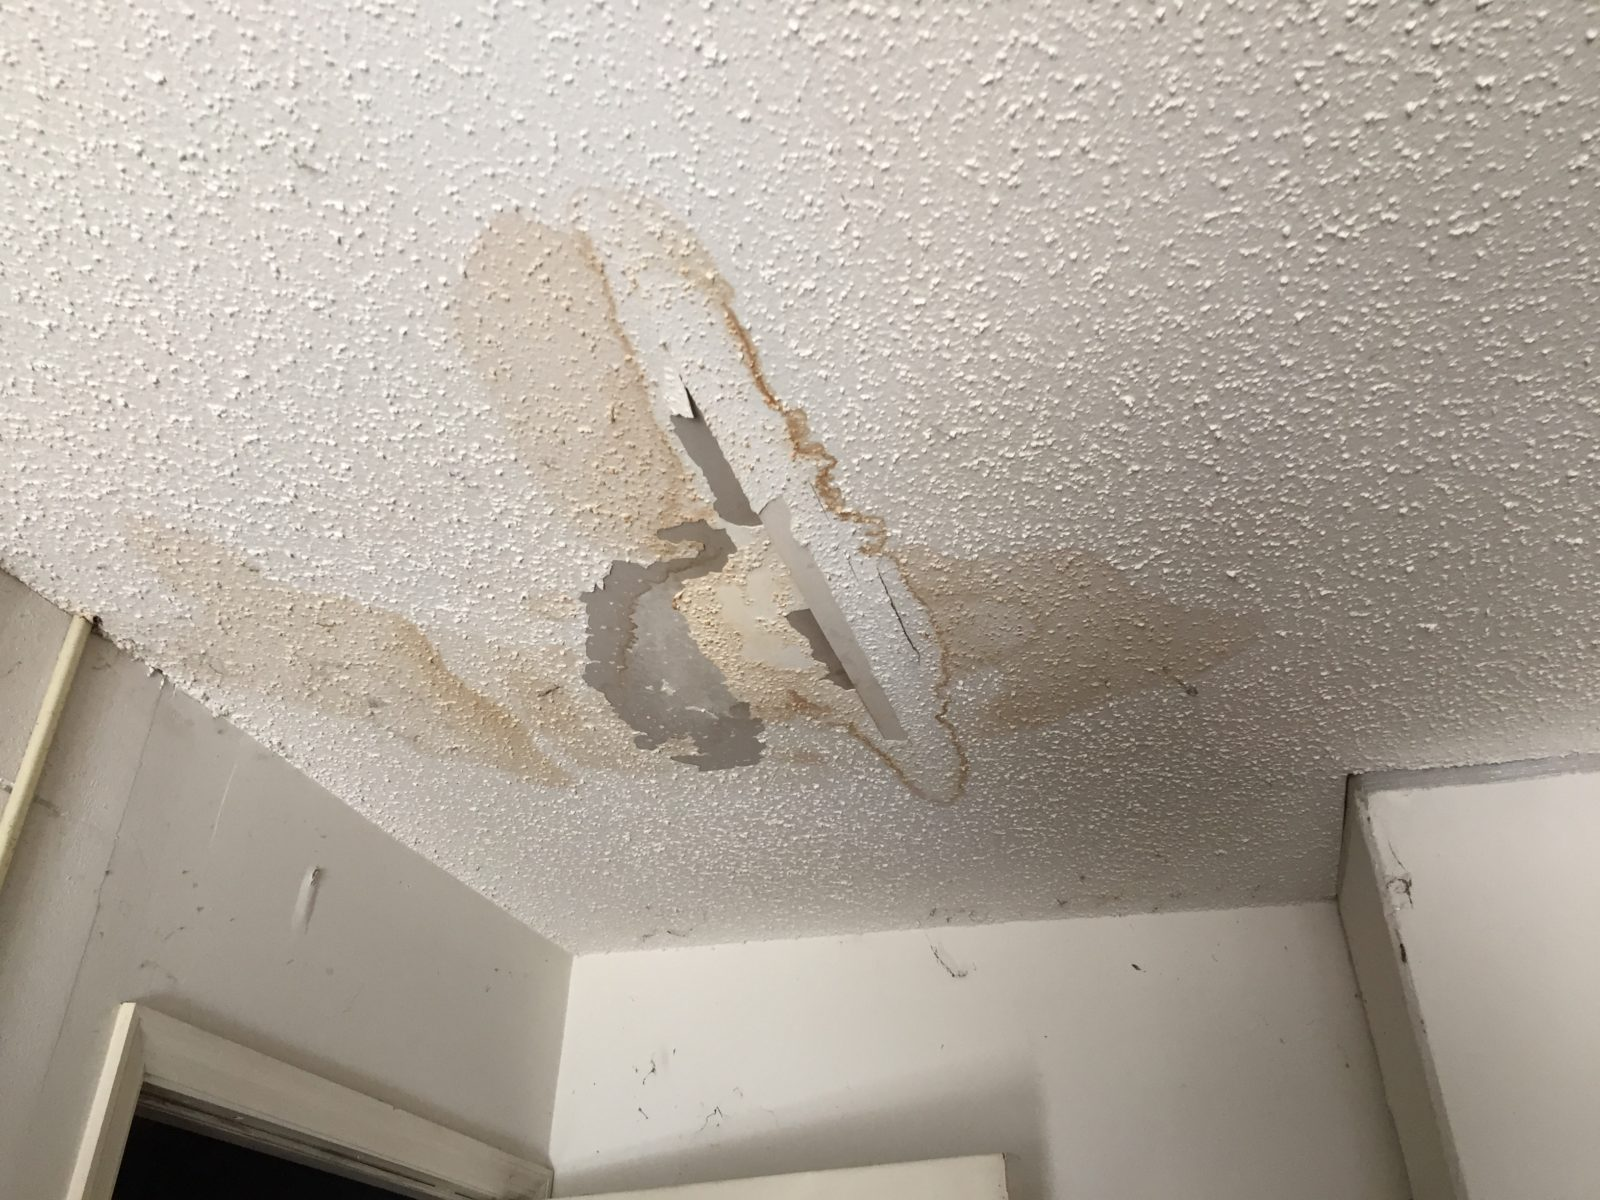 Leaky Roof Photo Tampa Florida